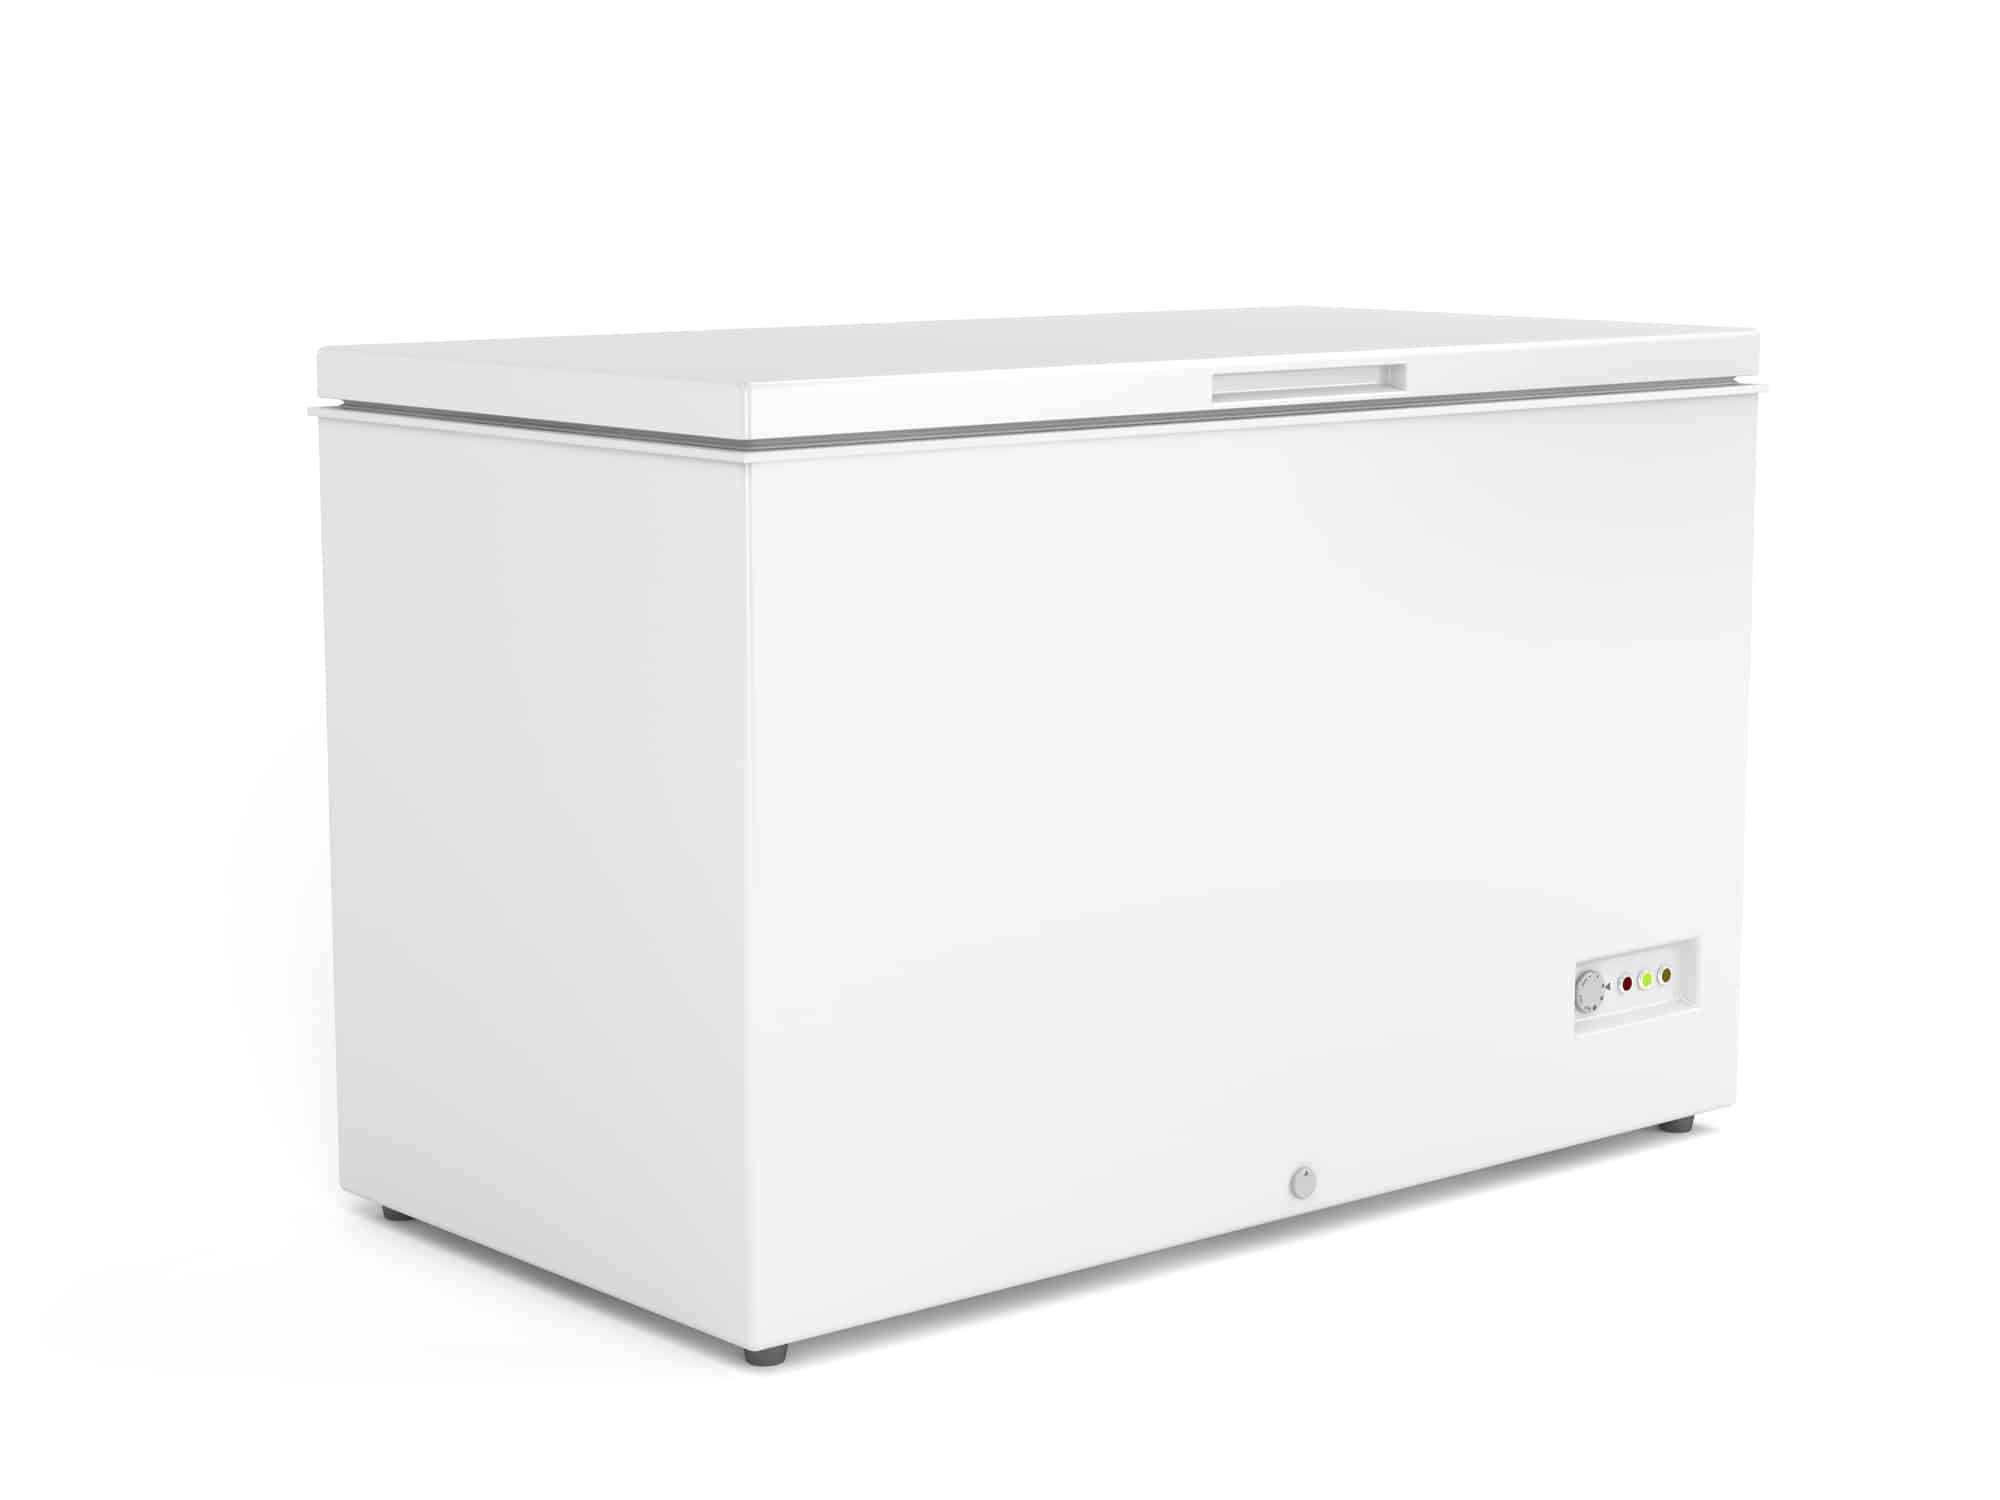 What To Consider When Buying A Chest Freezer